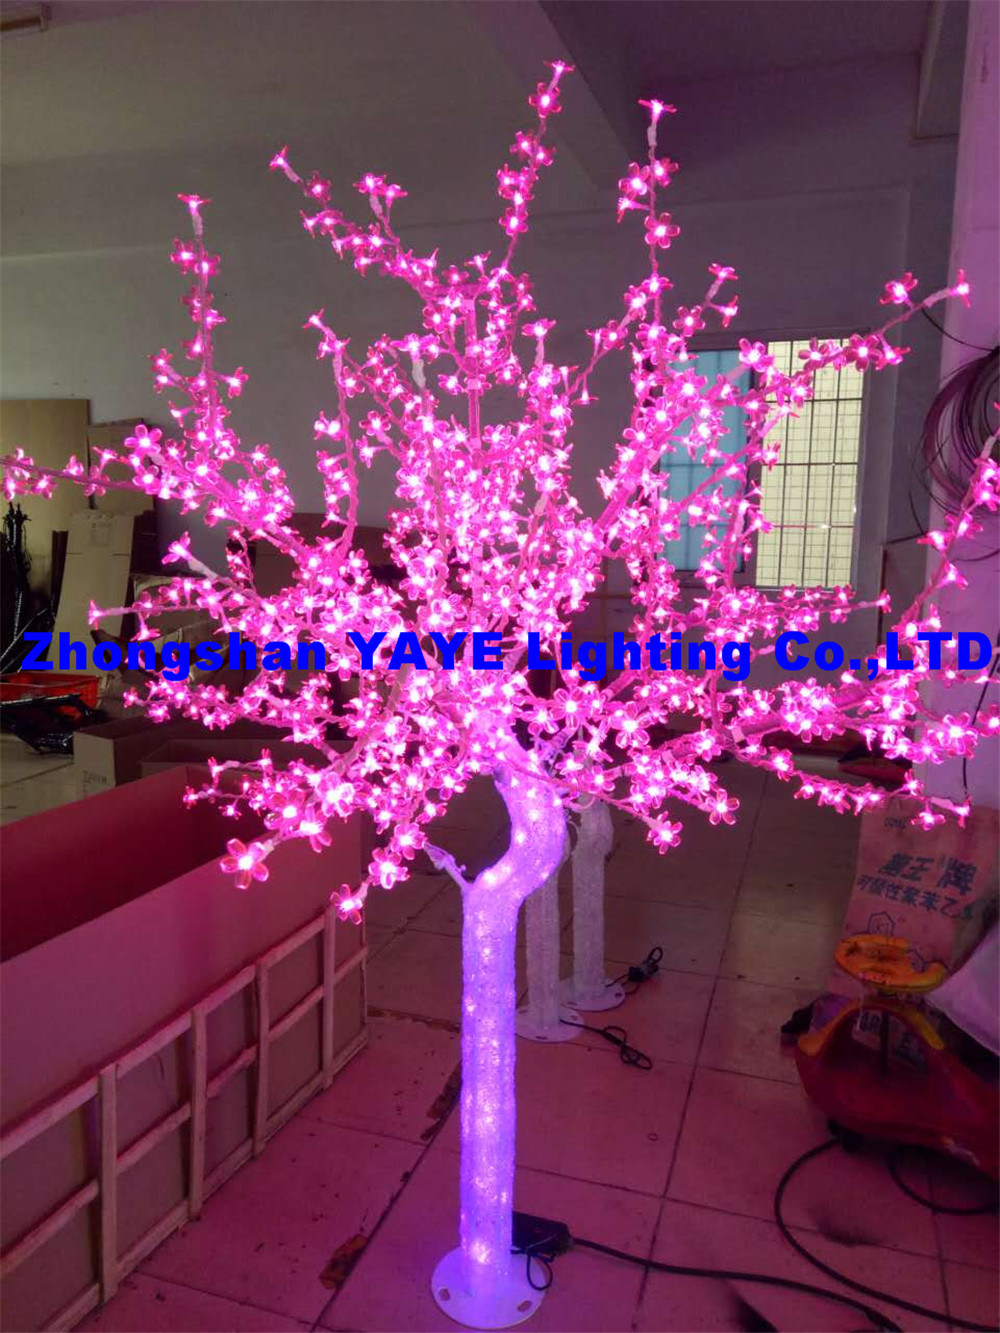 China yaye 18 cerohs 2 years warranty abs outdoor led tree light china yaye 18 cerohs 2 years warranty abs outdoor led tree light led christmas tree light pink led tree lights china abs led tree lights aloadofball